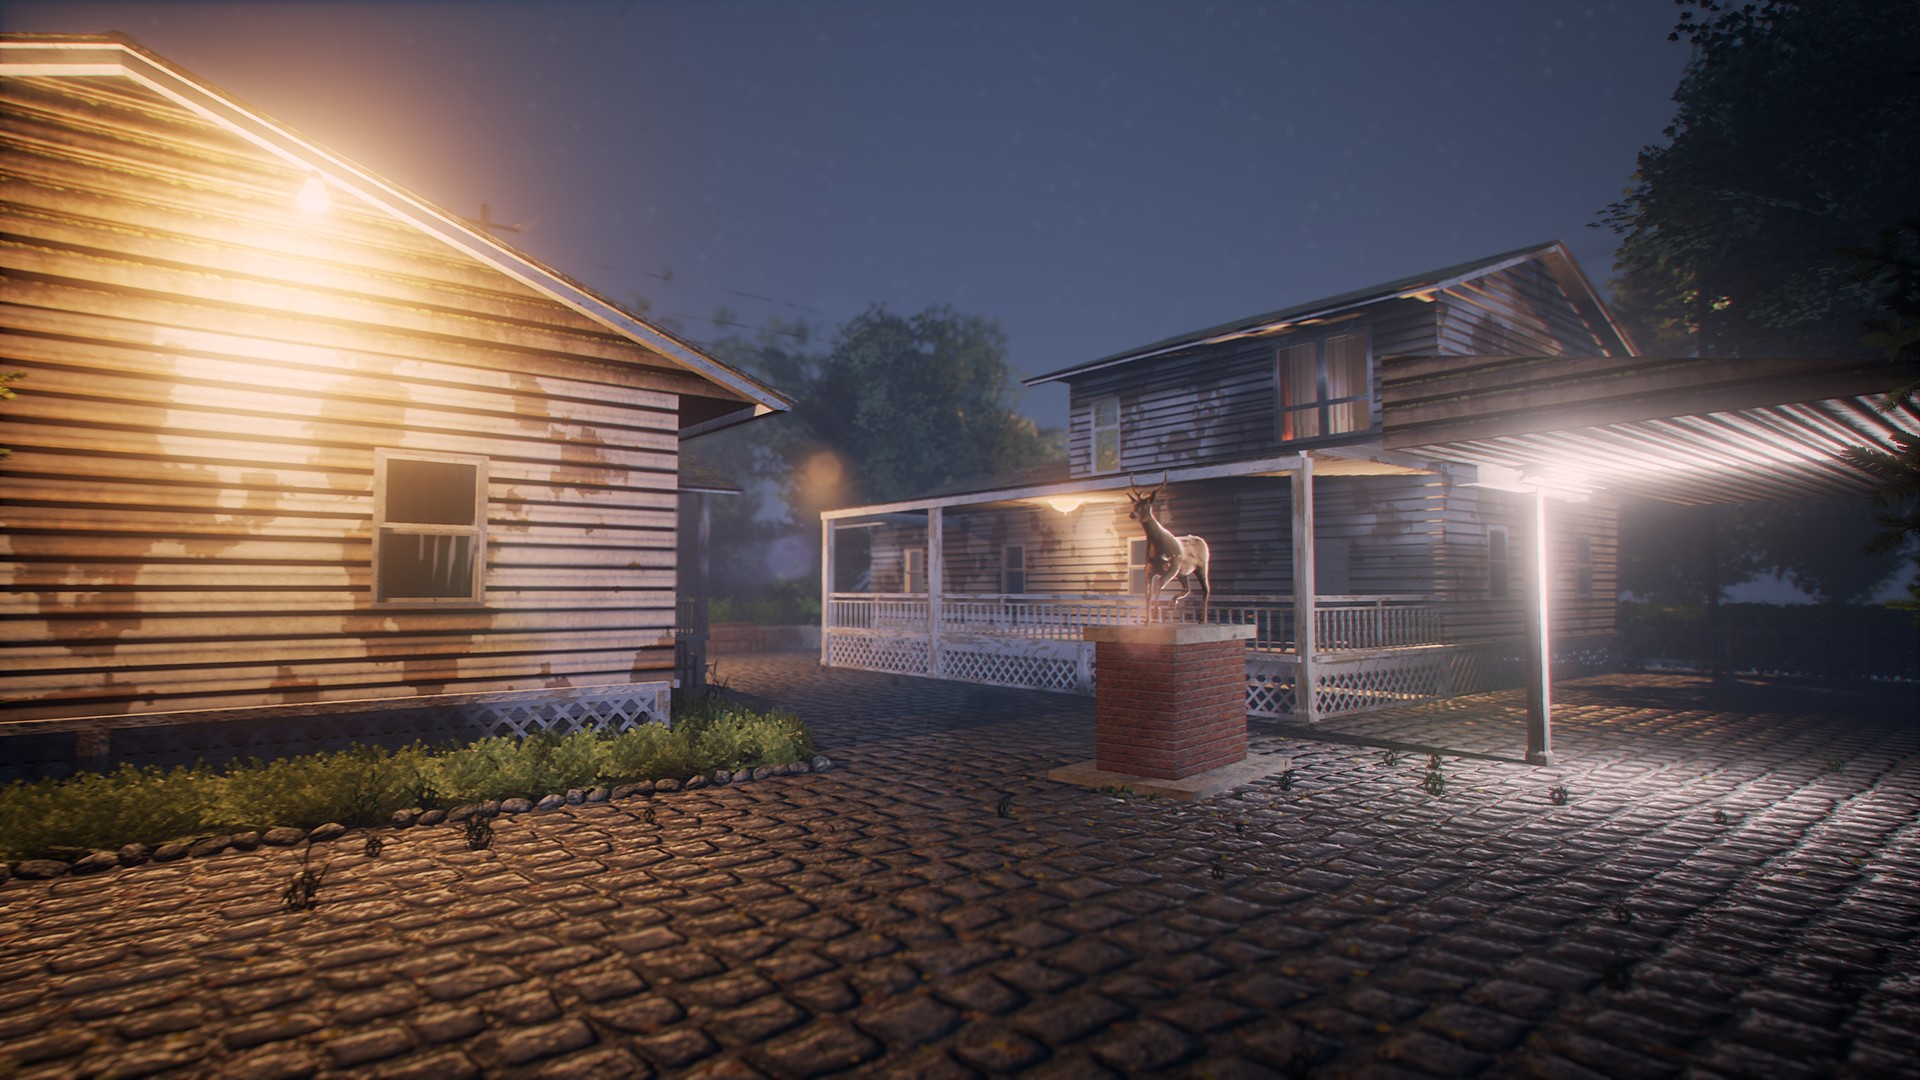 Env and Lighting by Pramod nirwan 07- Unreal Engine 4 : unreal 4 lighting - azcodes.com